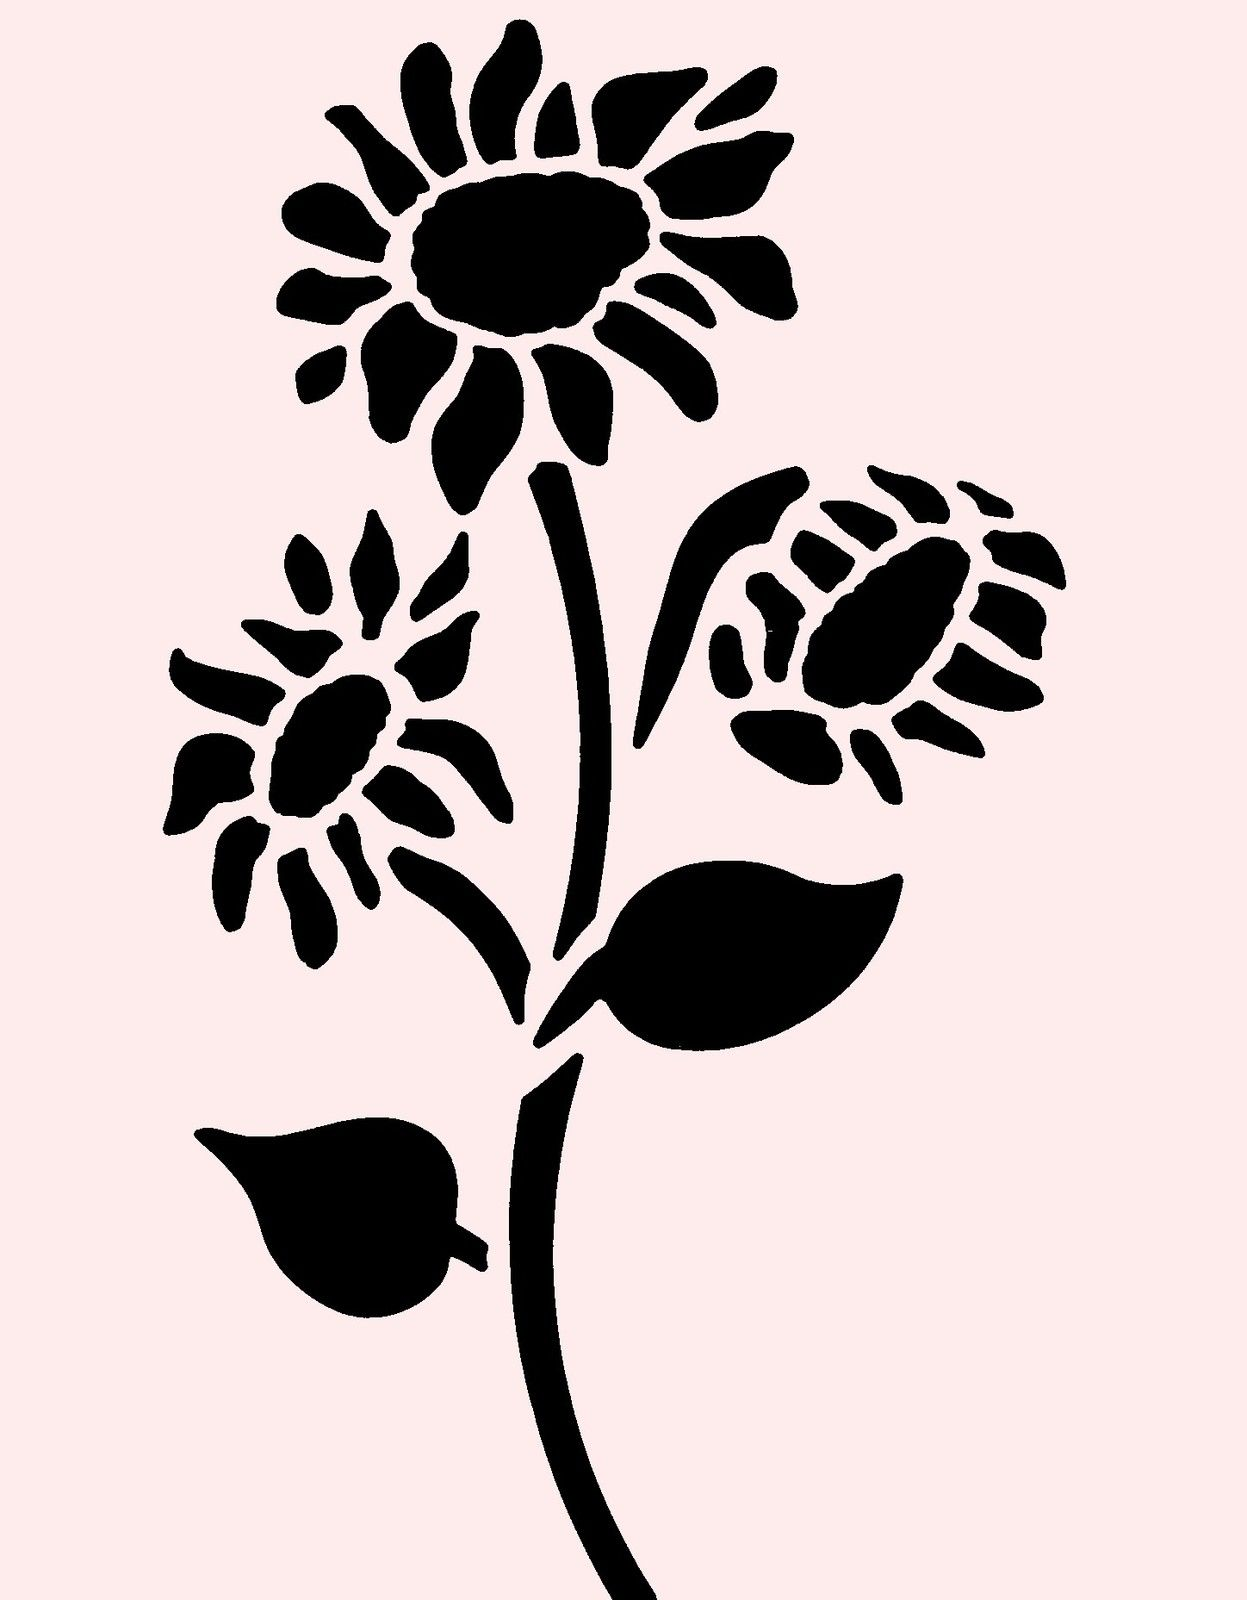 Flower Stencils Printable : The gallery for gt sunflower stencil